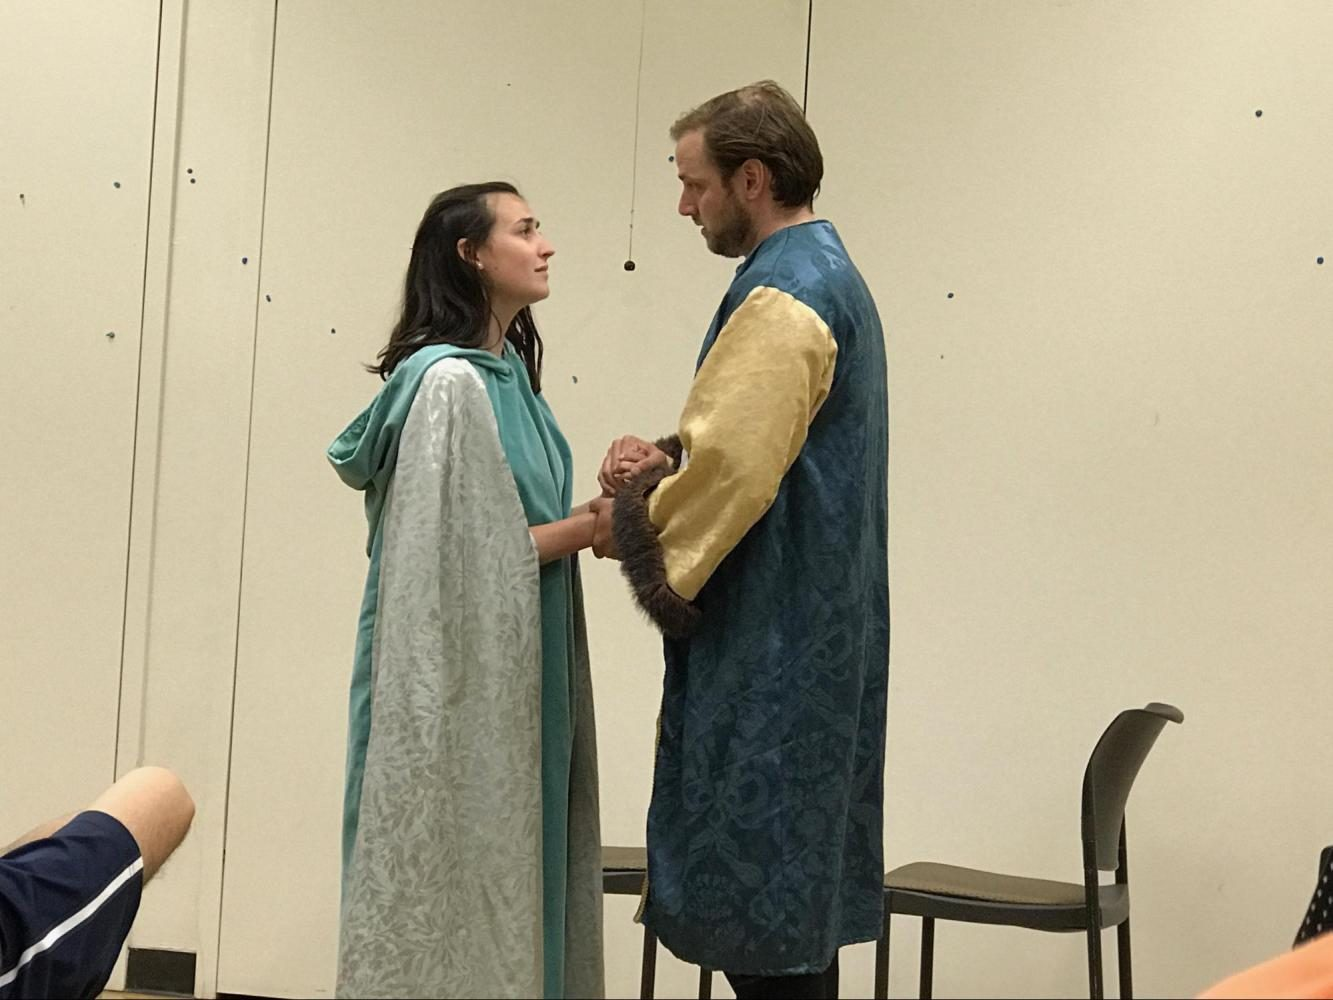 Professional+actors+Mark+Vashro+and+LeighAnn+Cannon+perform+a+scene+from+%E2%80%9CWhat+You+Will%E2%80%9D+in+De+Anza+College+on+June+6.